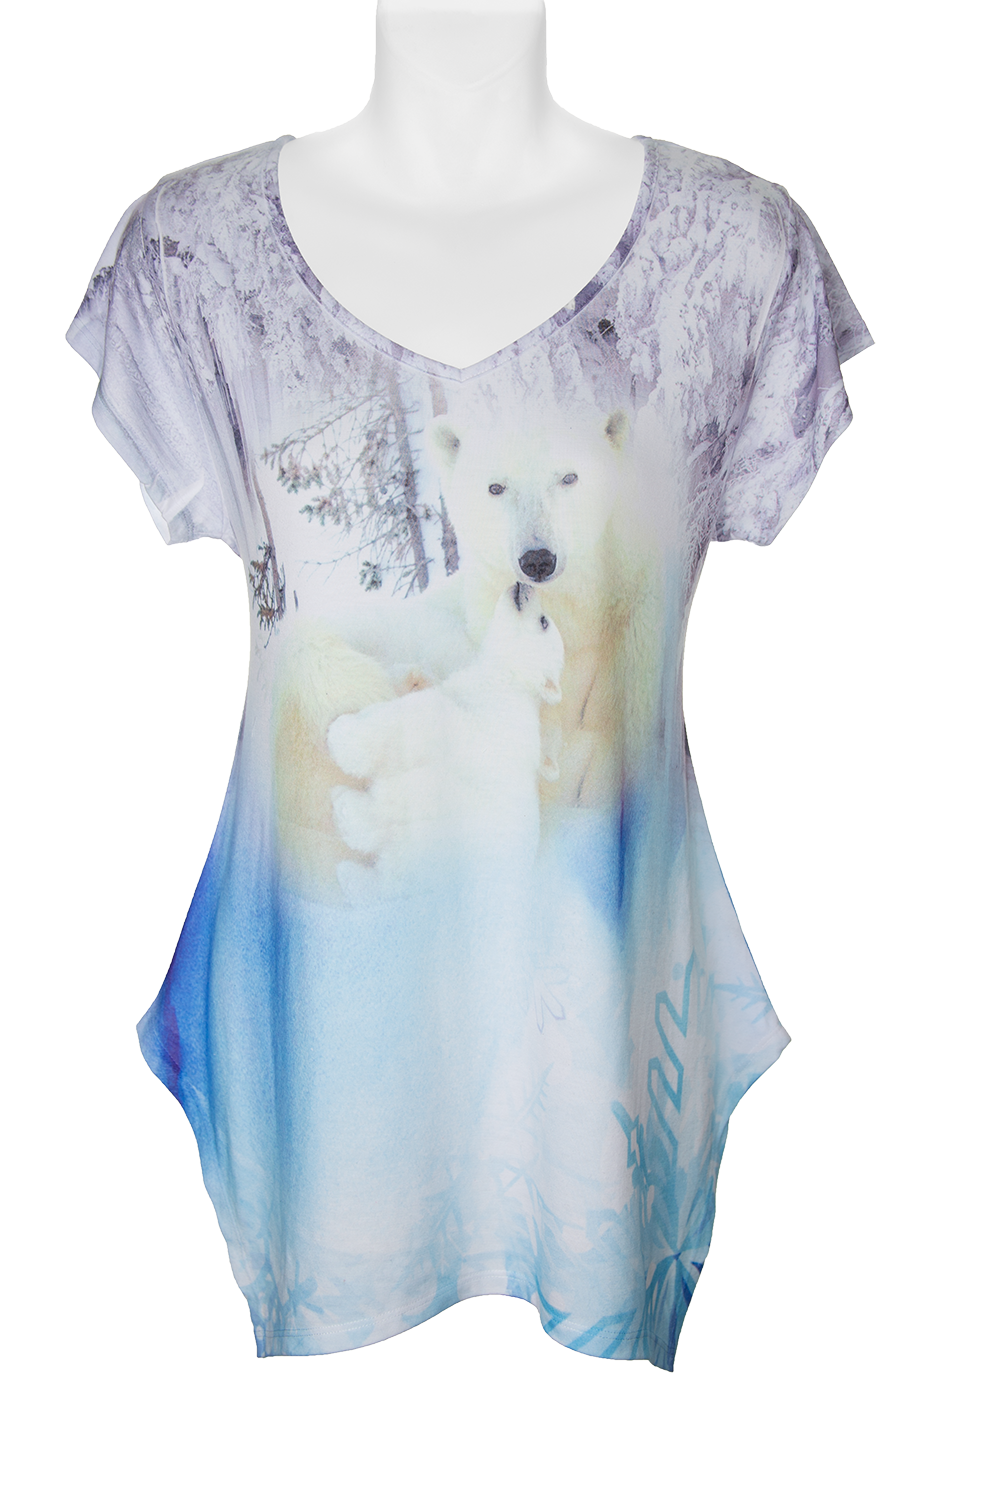 Devoted Polar Bear Women's Fashion Shirt- fashion t-shirt sublimated with polar bear mom and cub design